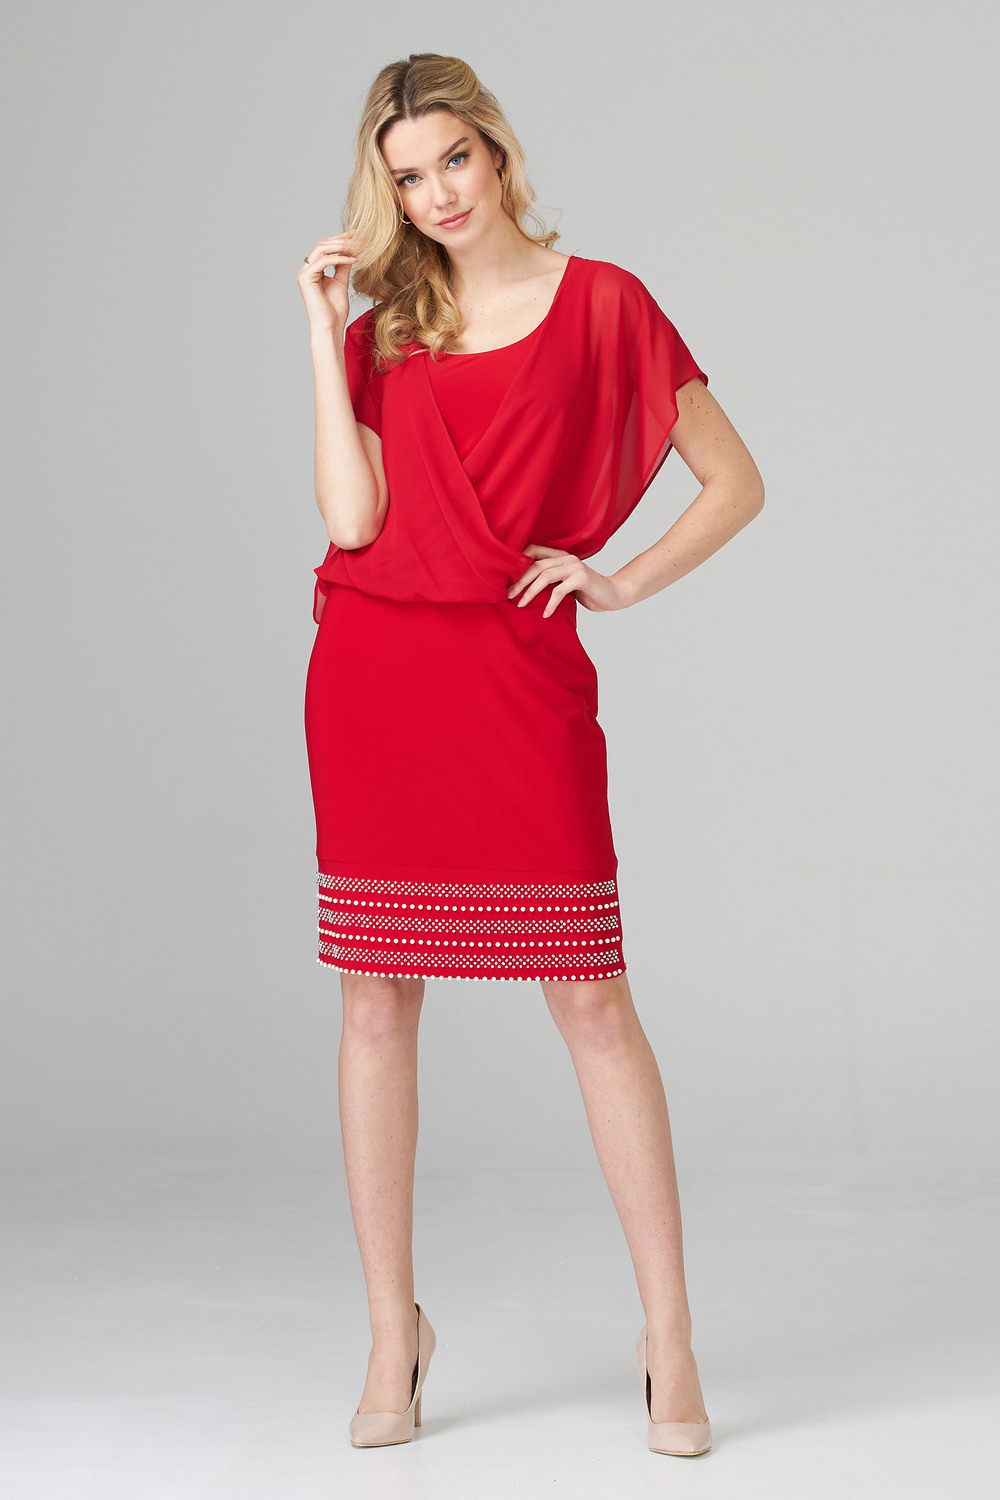 Joseph Ribkoff Robes Rouge A Levres 173 Style 201166